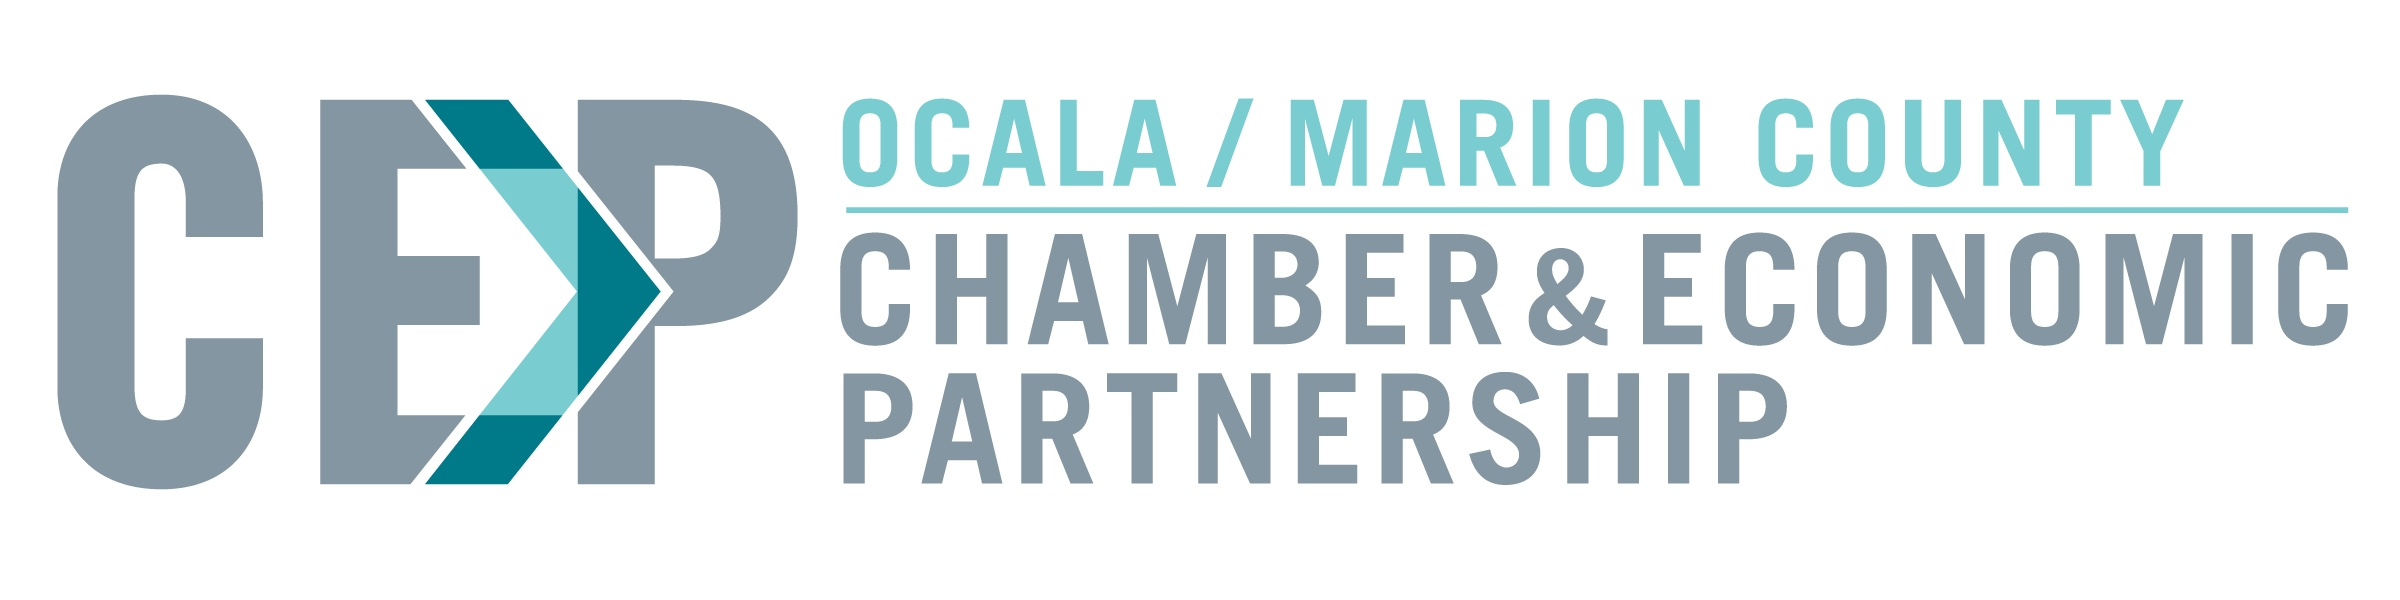 Chamber & Economic Partnership